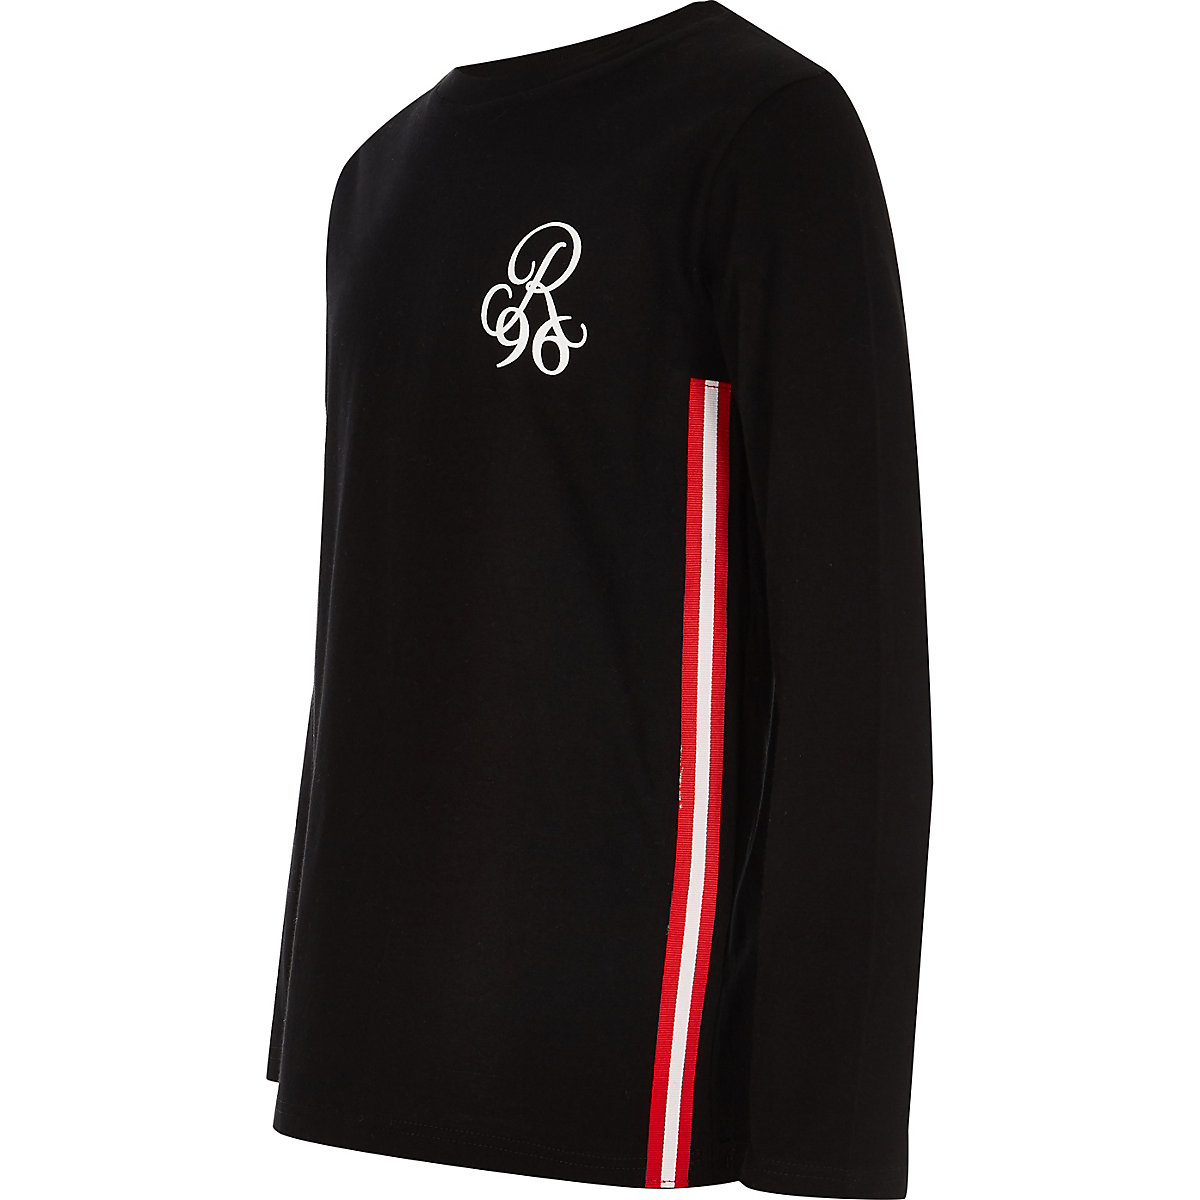 Boys black R96 long sleeve T-shirt